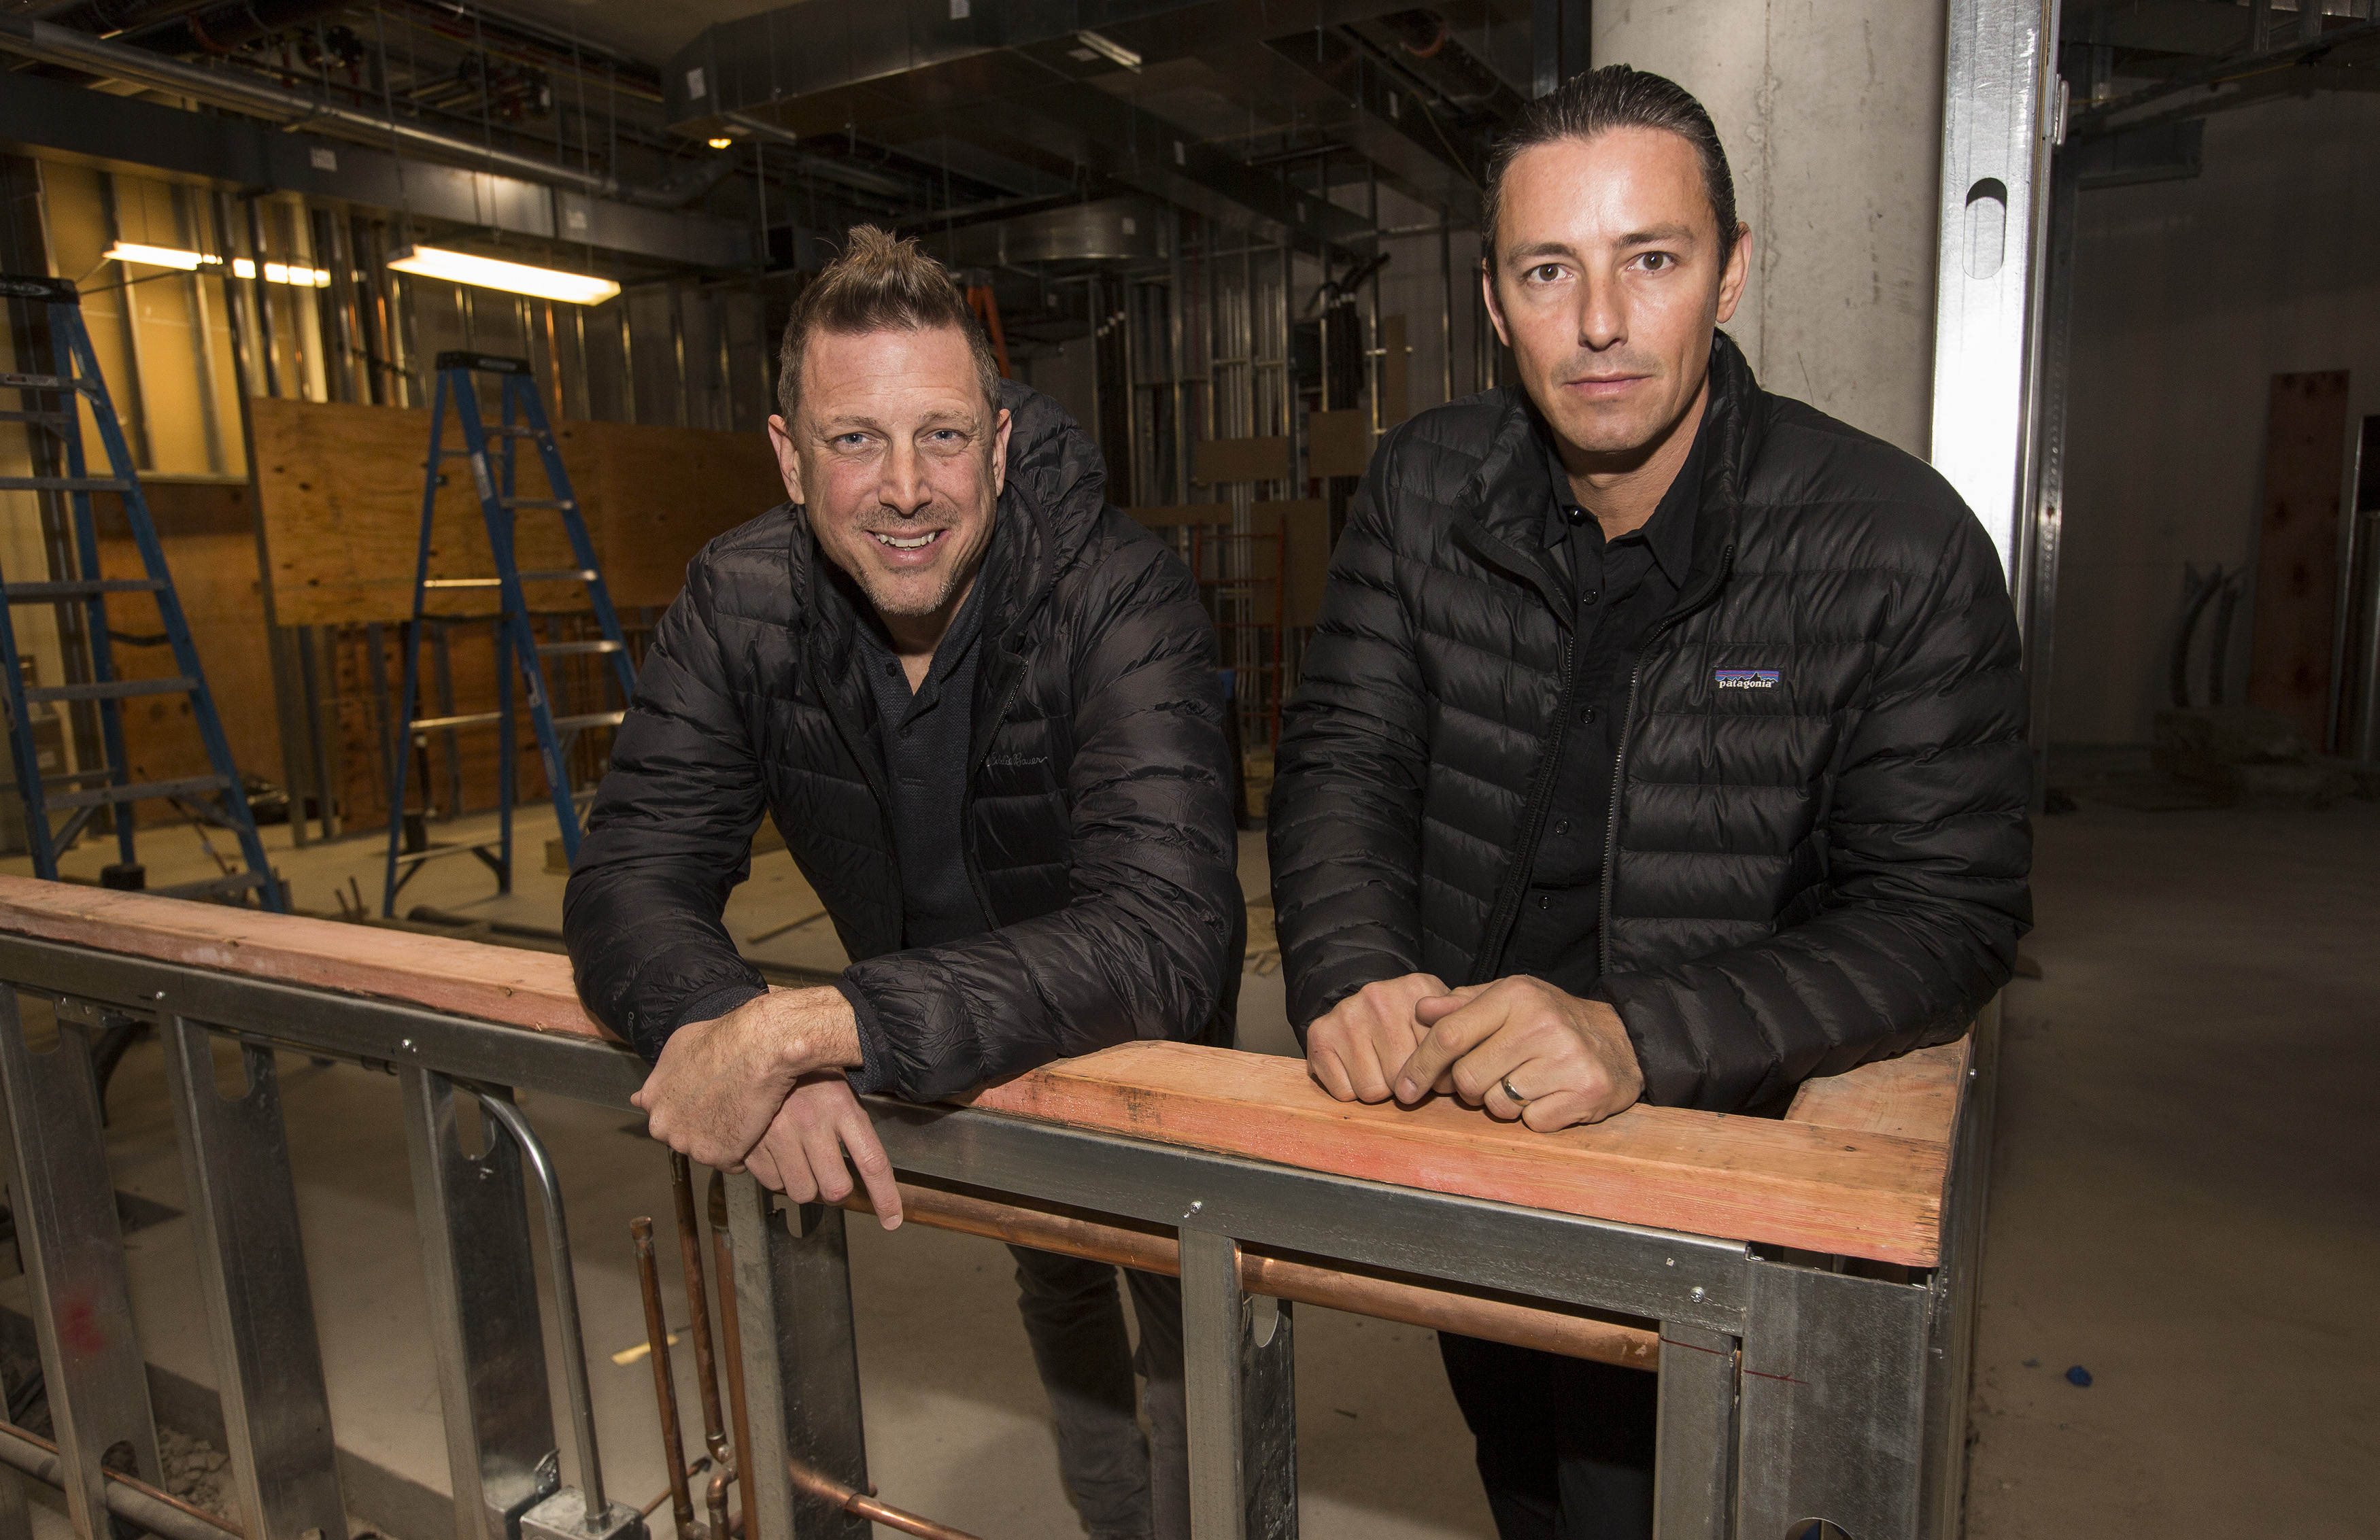 A chef and a general manager pose in an under-construction restaurant.